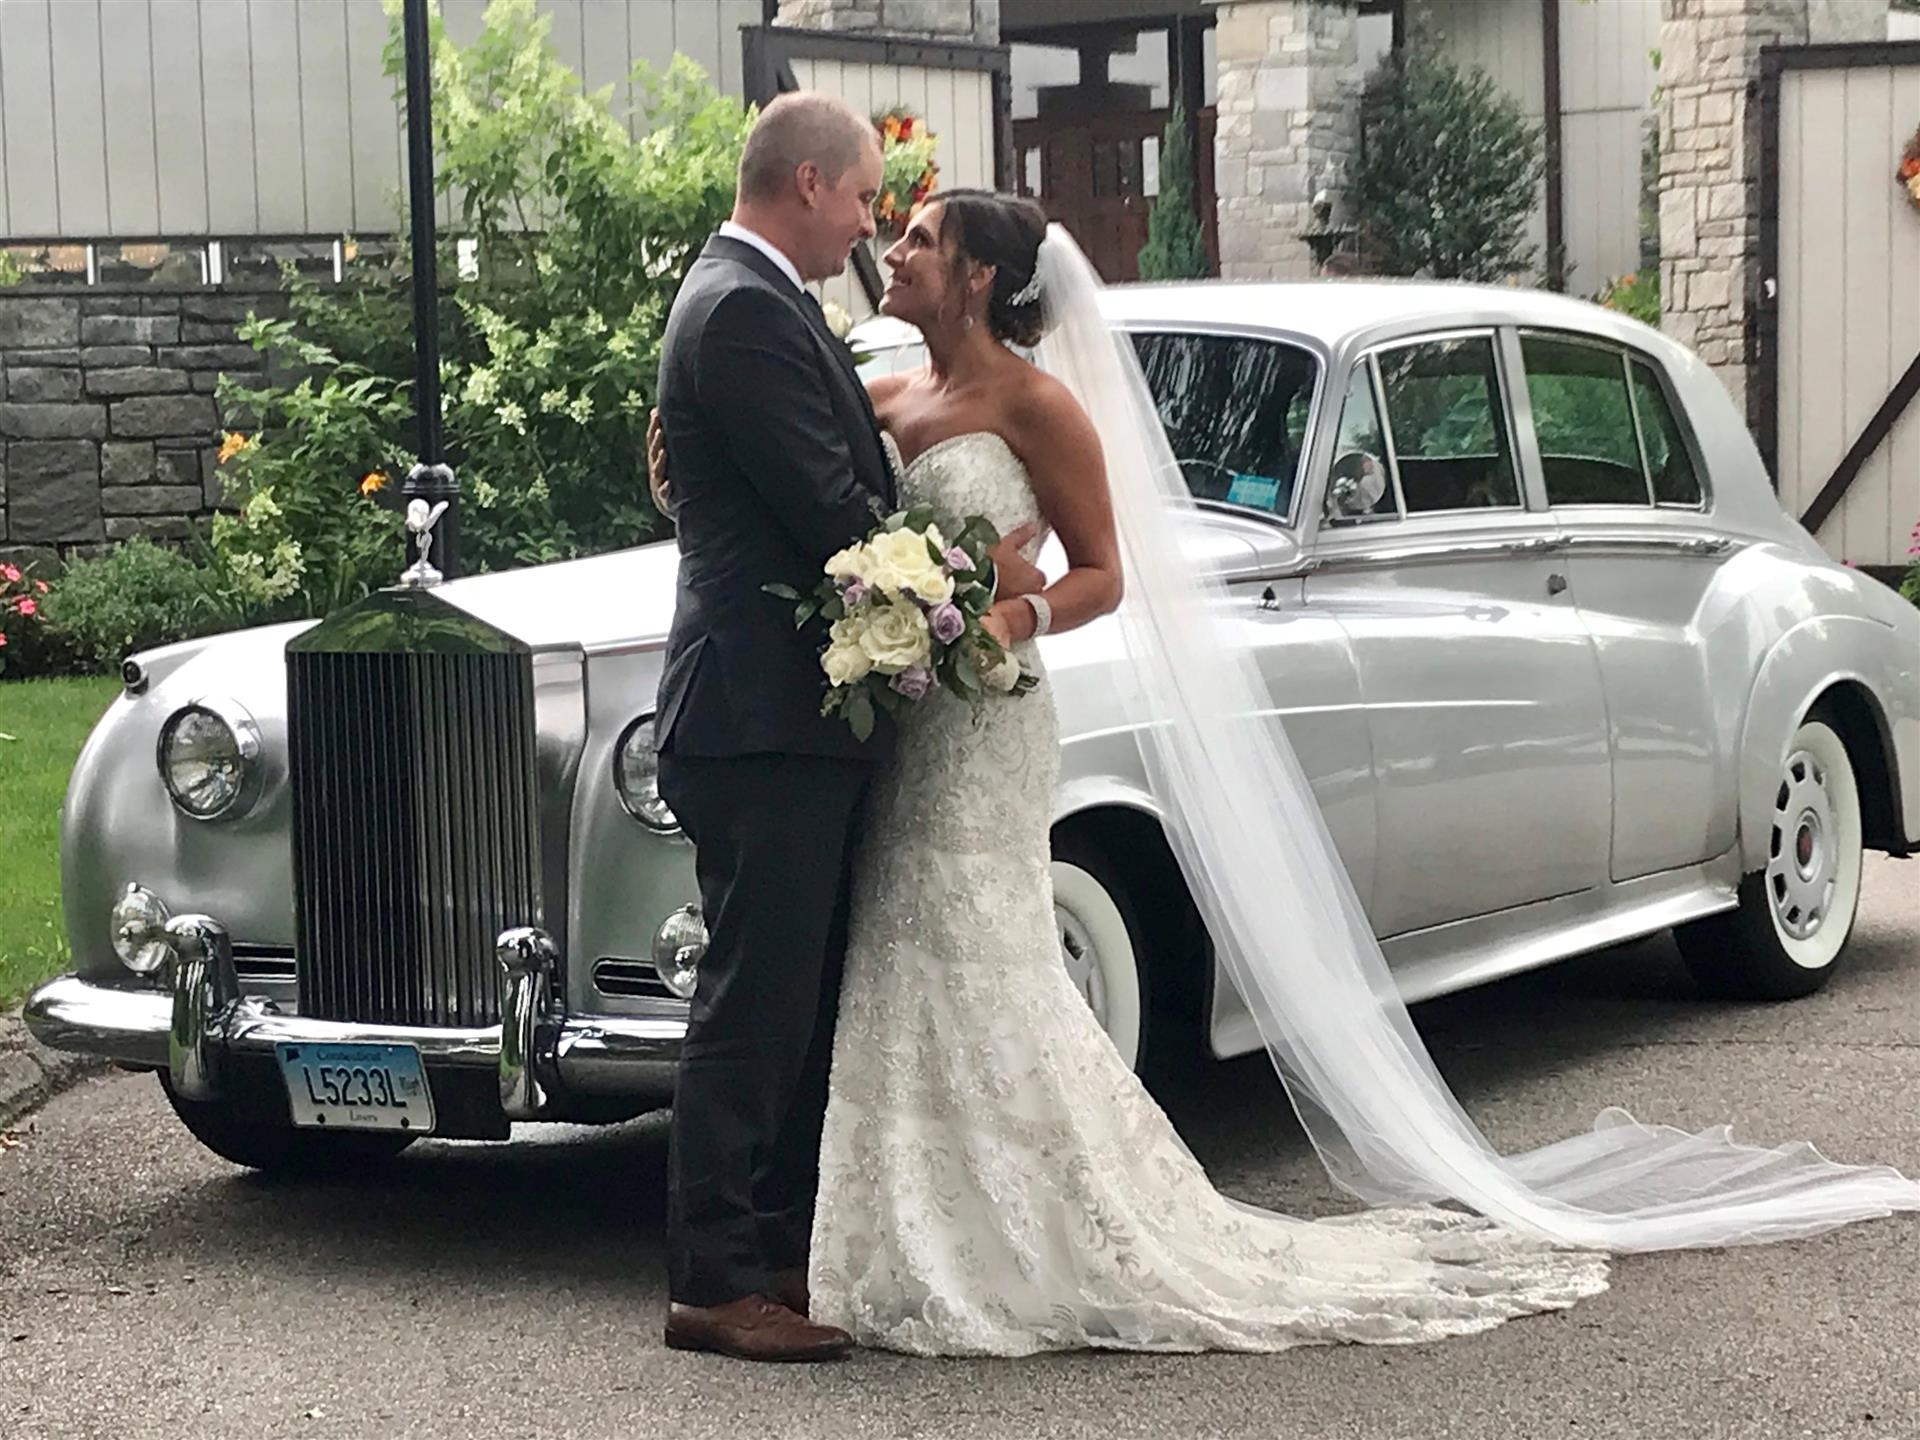 Bride and groom gazing at eachother in front of rolls royce